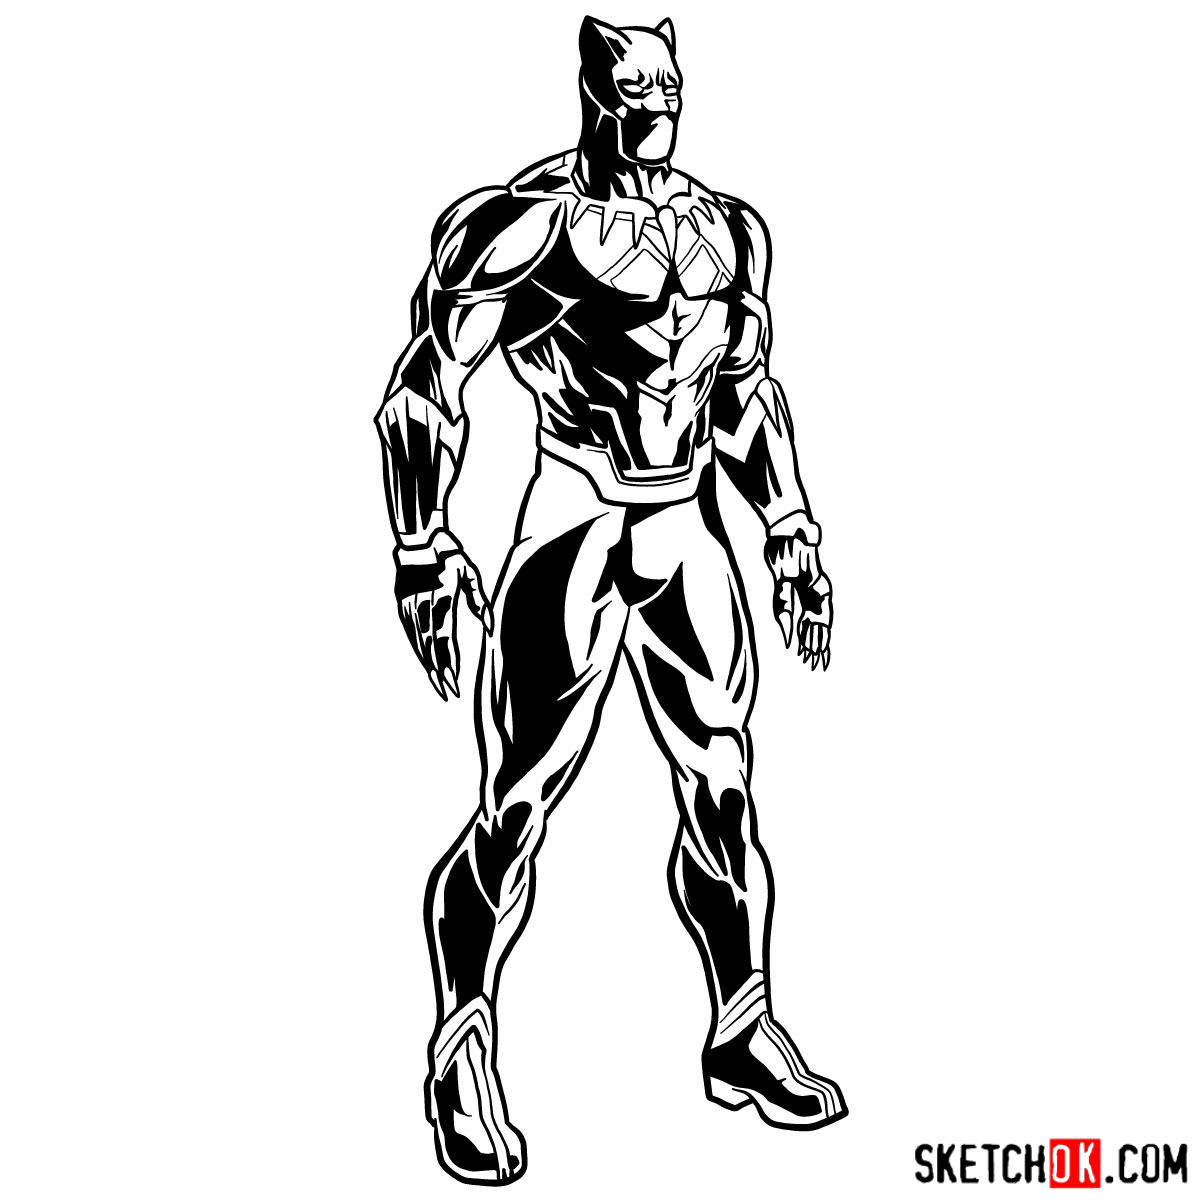 How to draw Black Panther from Marvel - step 17